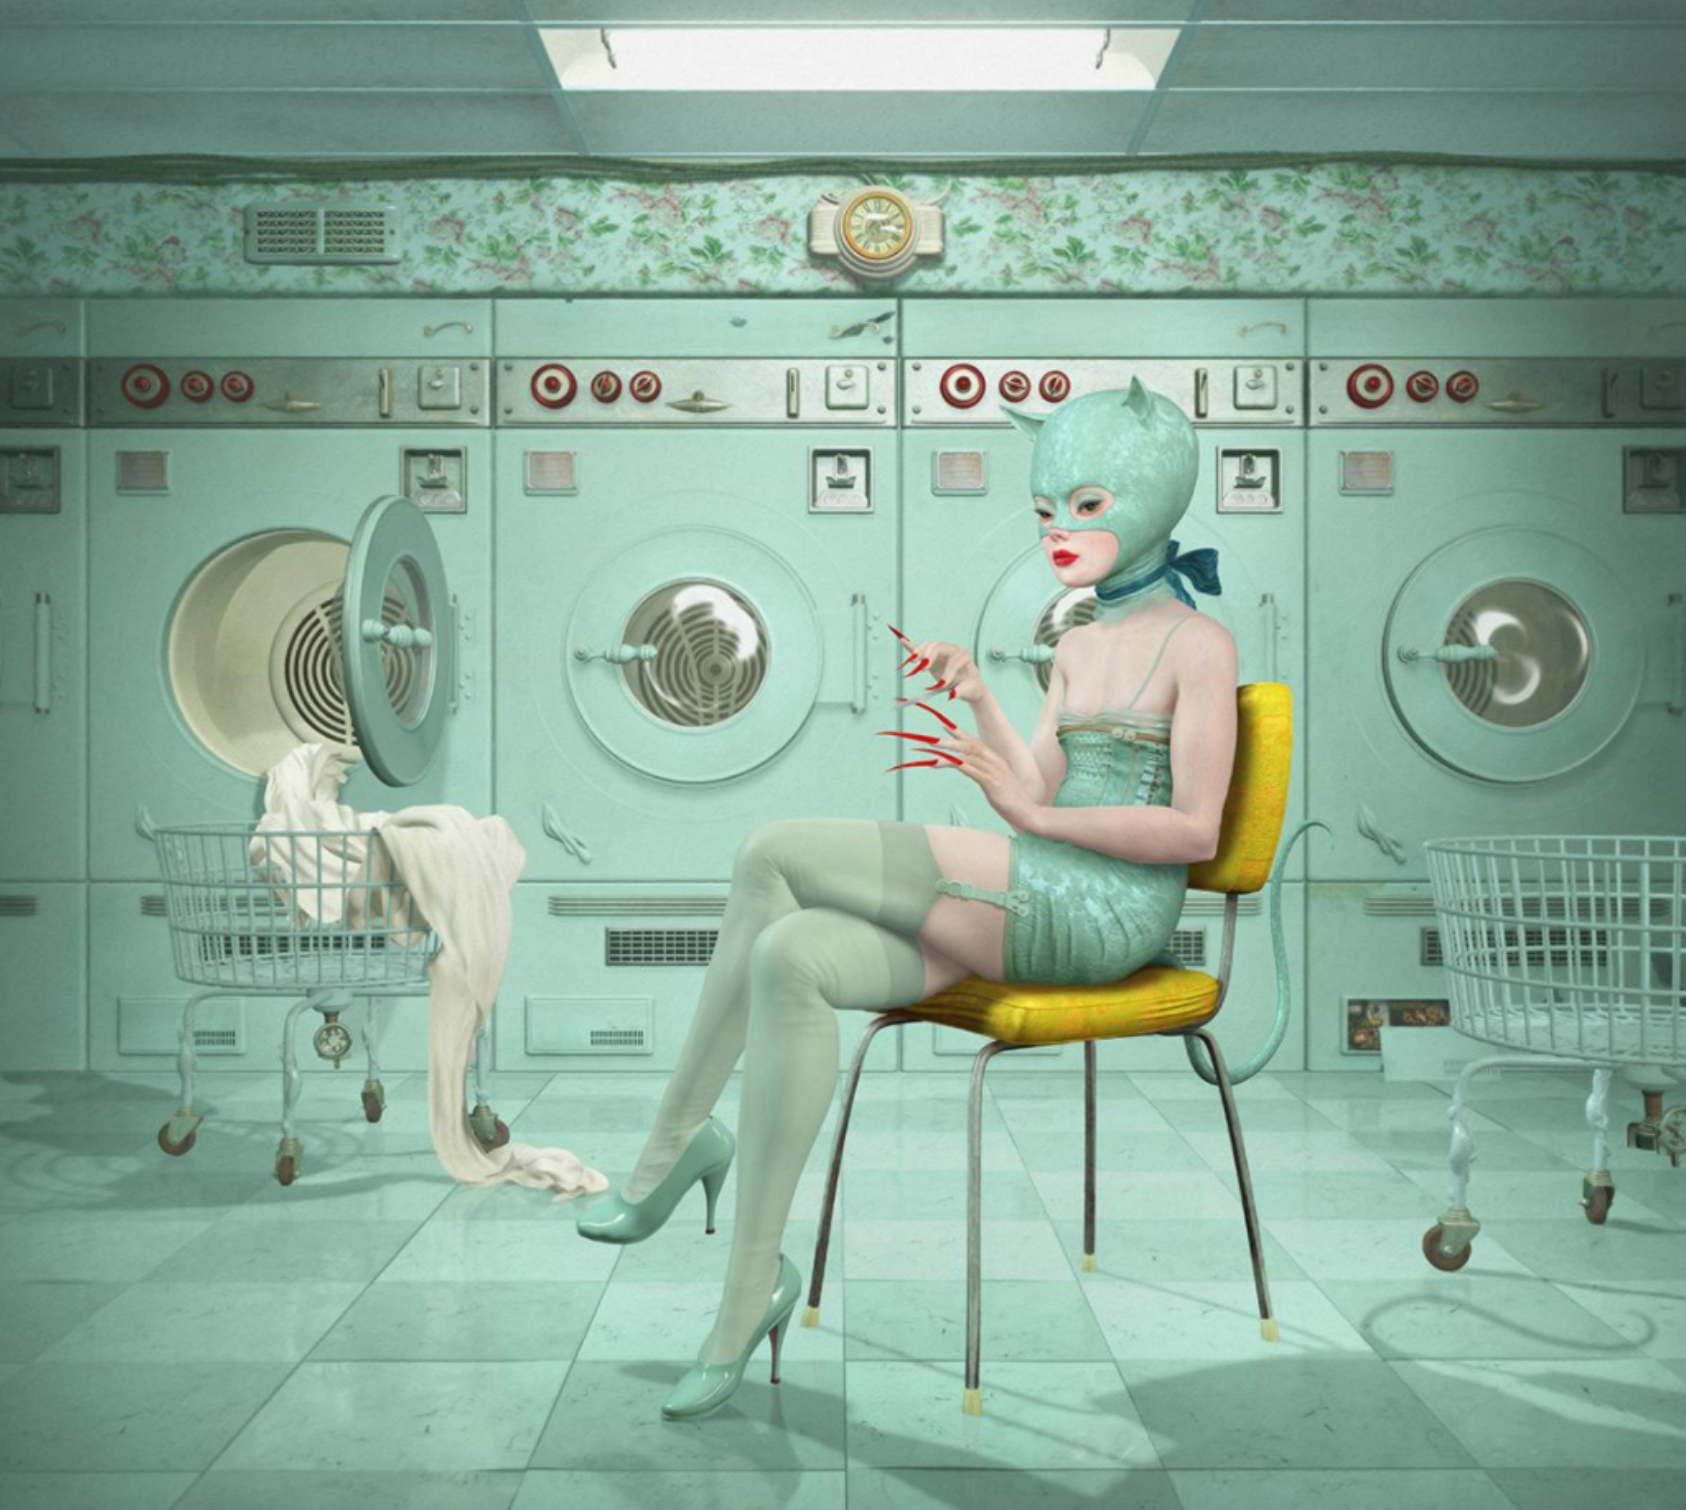 Kat in Laundromat - Courtesy of Ray Caesar/Gallery House